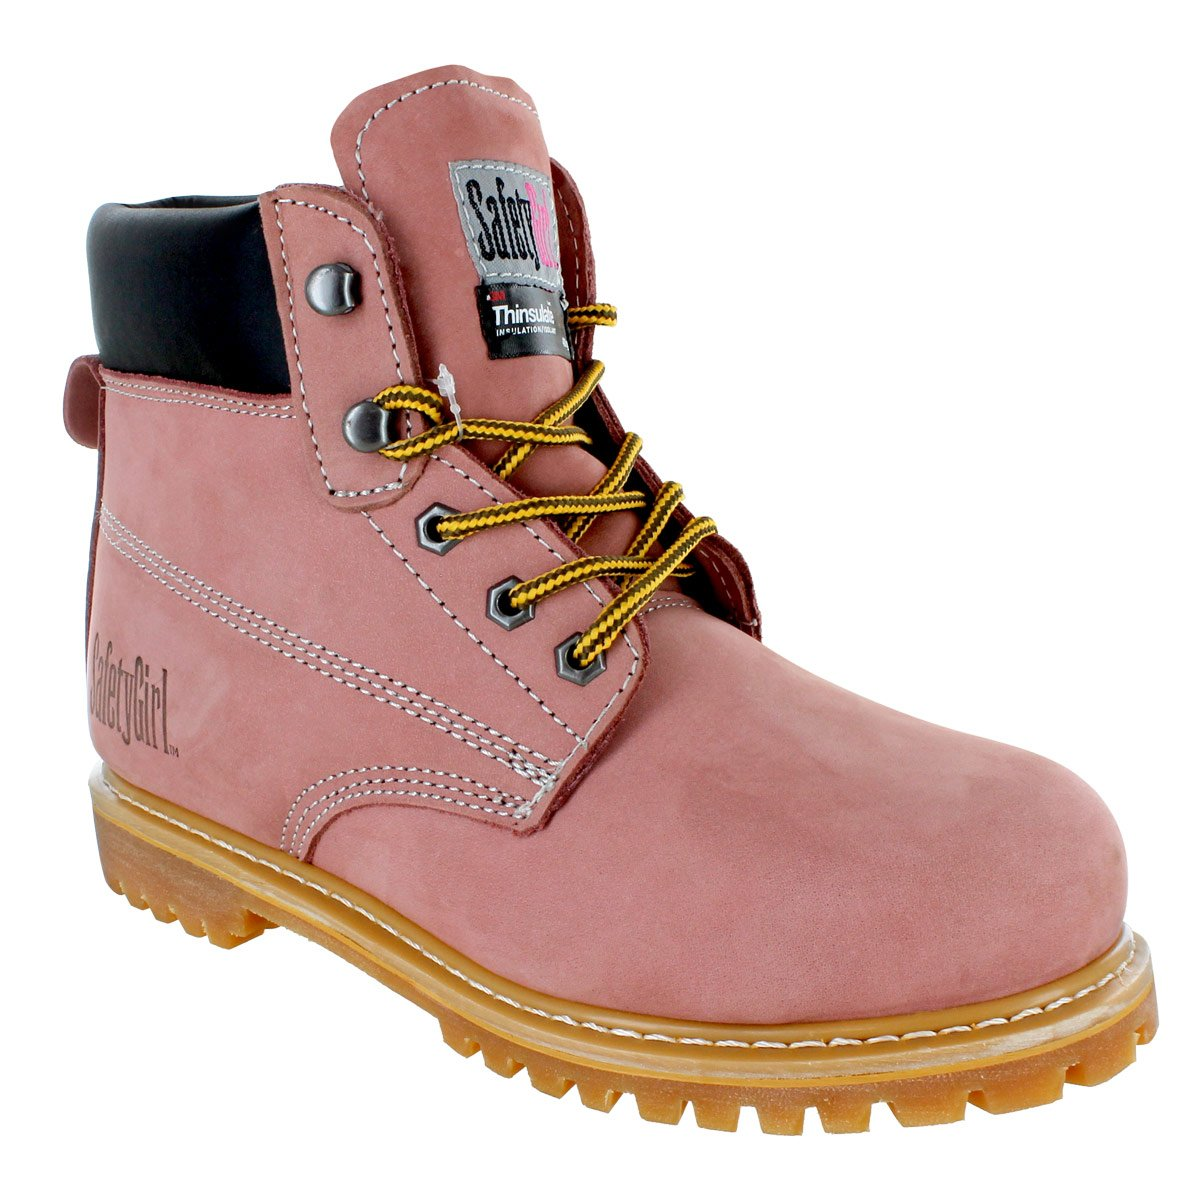 Safety Girl GS005-LTPink-8M Safety Girl II Insulated Work Boot - Steel Toe 8M, English, Capacity, Volume, Leather, 8M, Pink ()